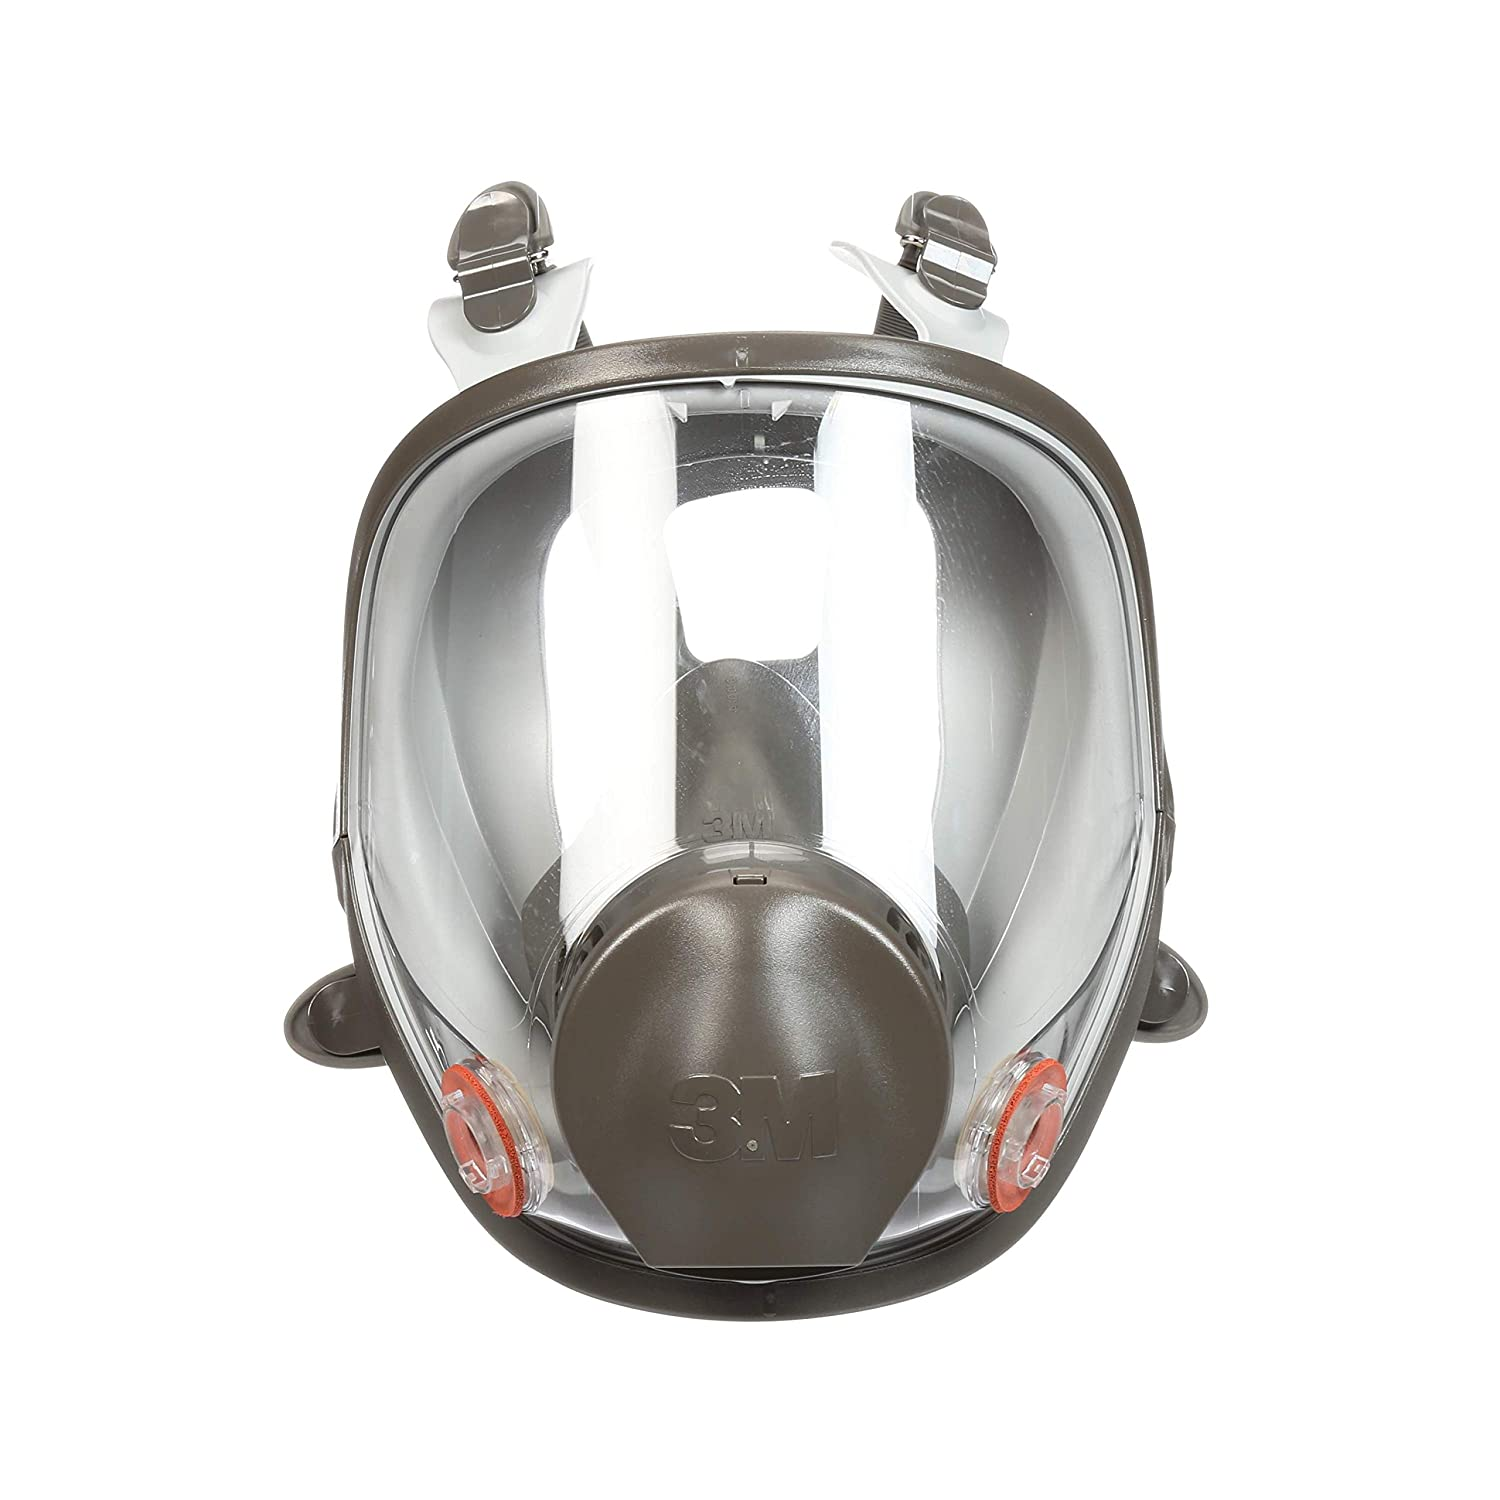 3M Full Facepiece Reusable Respirator 6700/54145, Respiratory Protection, Small (Pack of 1)